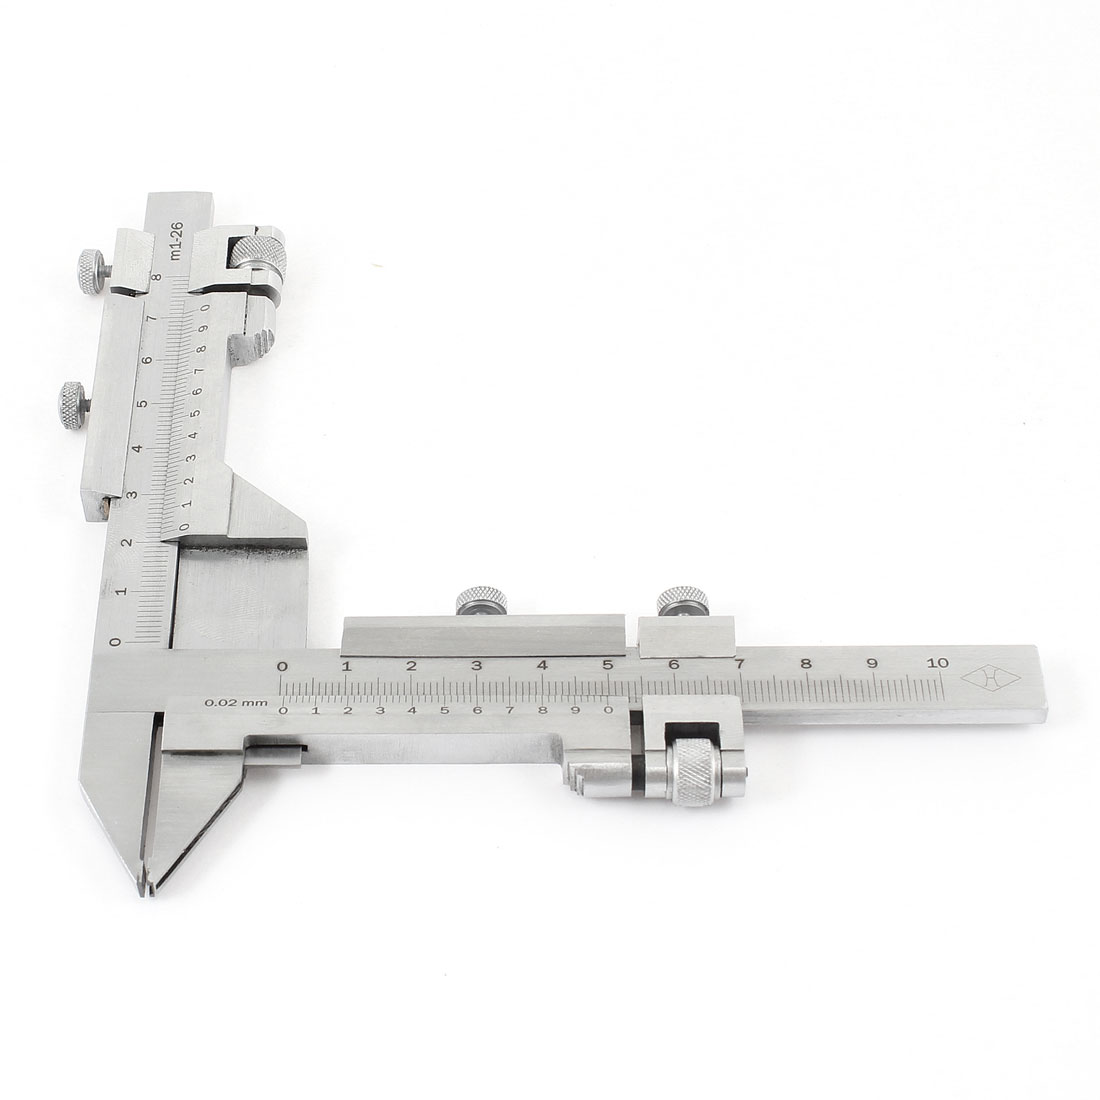 Gear Tooth Vernier Caliper Measuring Tool 100mm-0.02mm with Wood Box